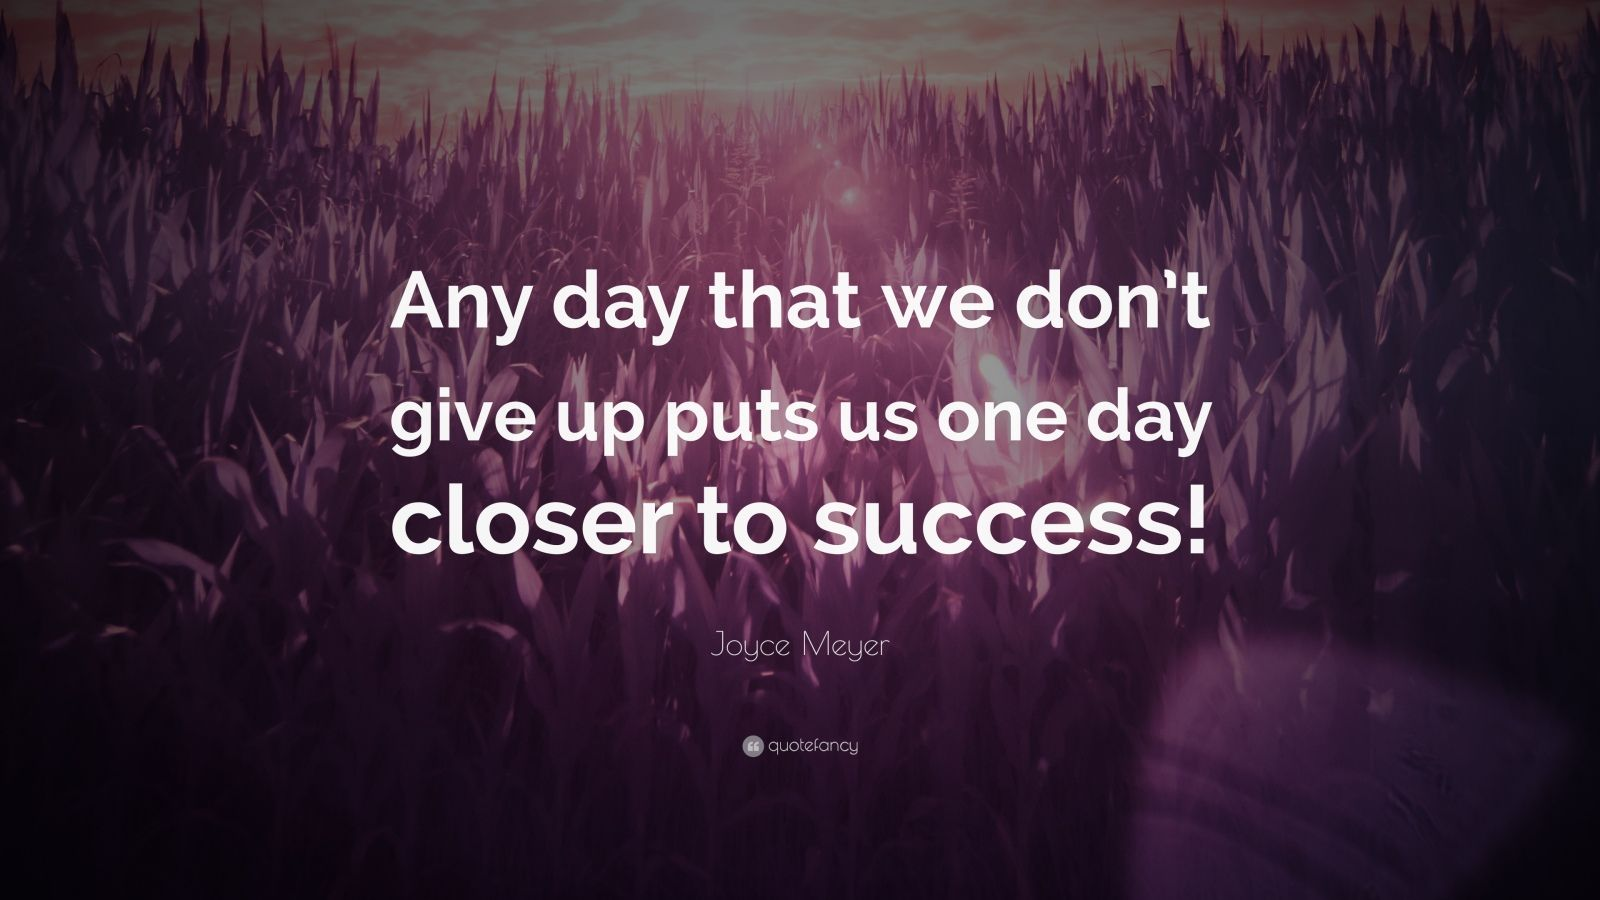 """Joyce Meyer Quote: """"Any day that we don't give up puts us one day closer to success!"""""""